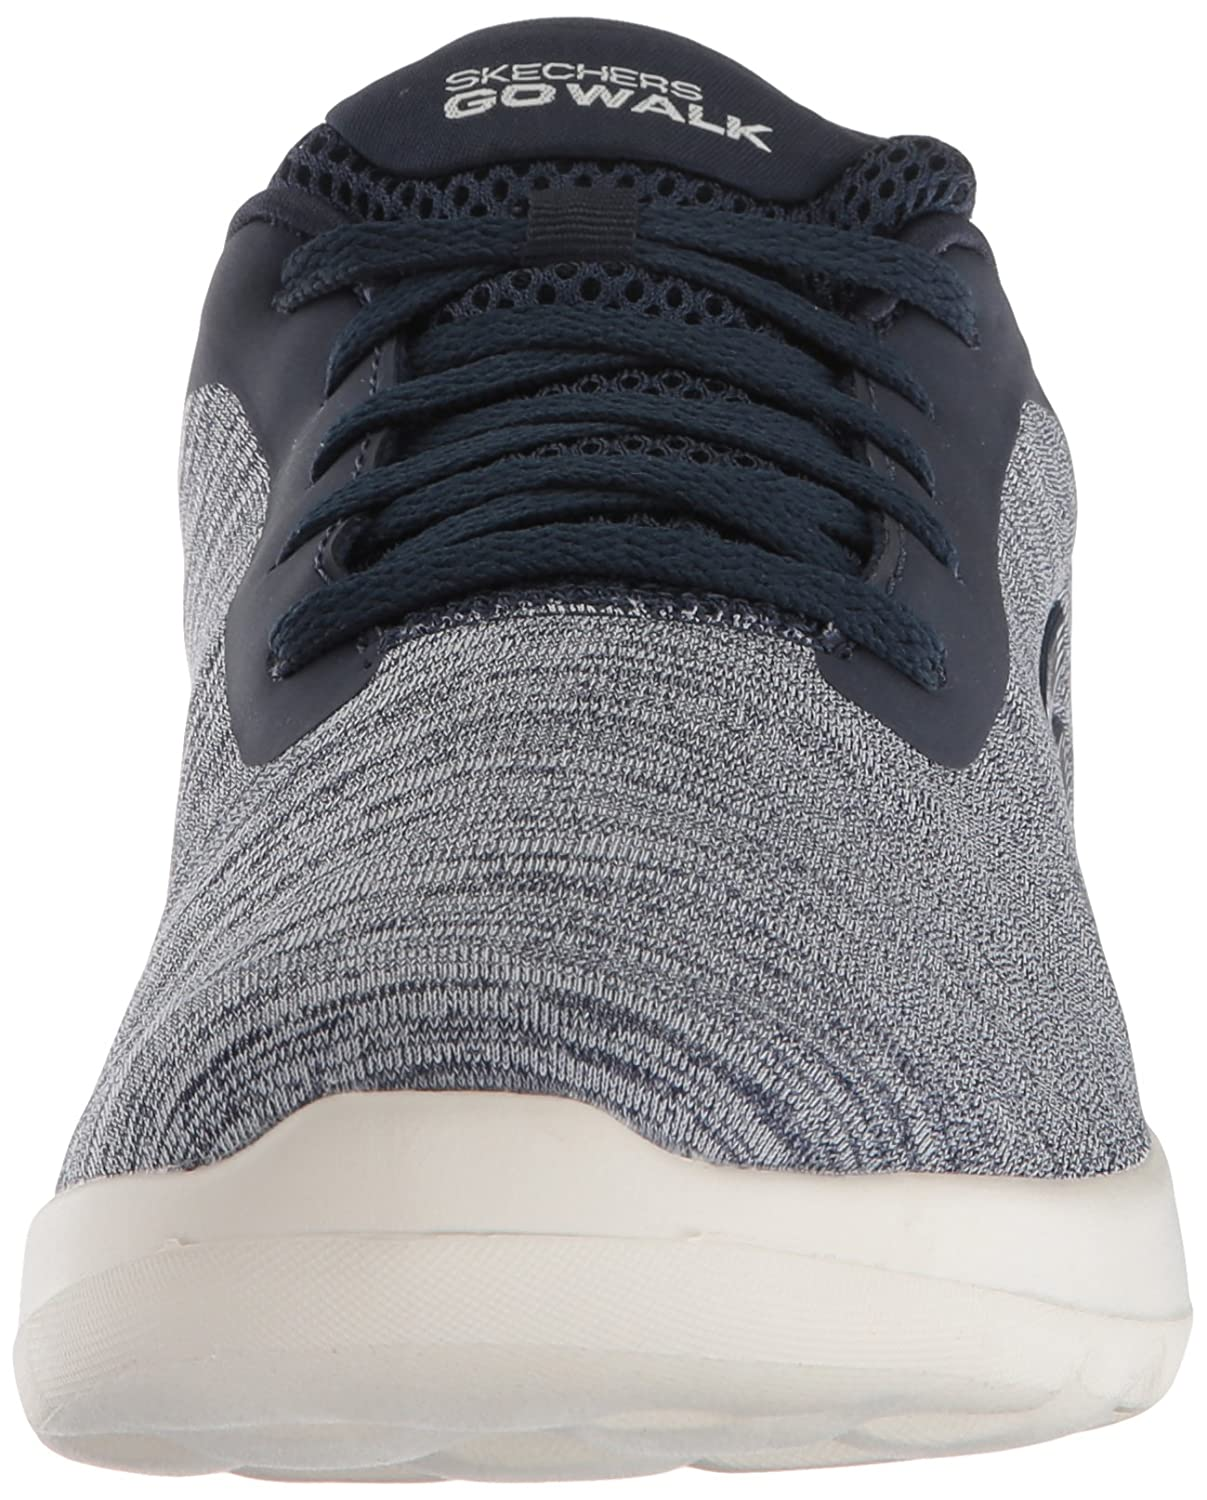 Skechers Women's Go Walk Joy-15633 Sneaker B078GLDB5V 7 B(M) US|Navy/White